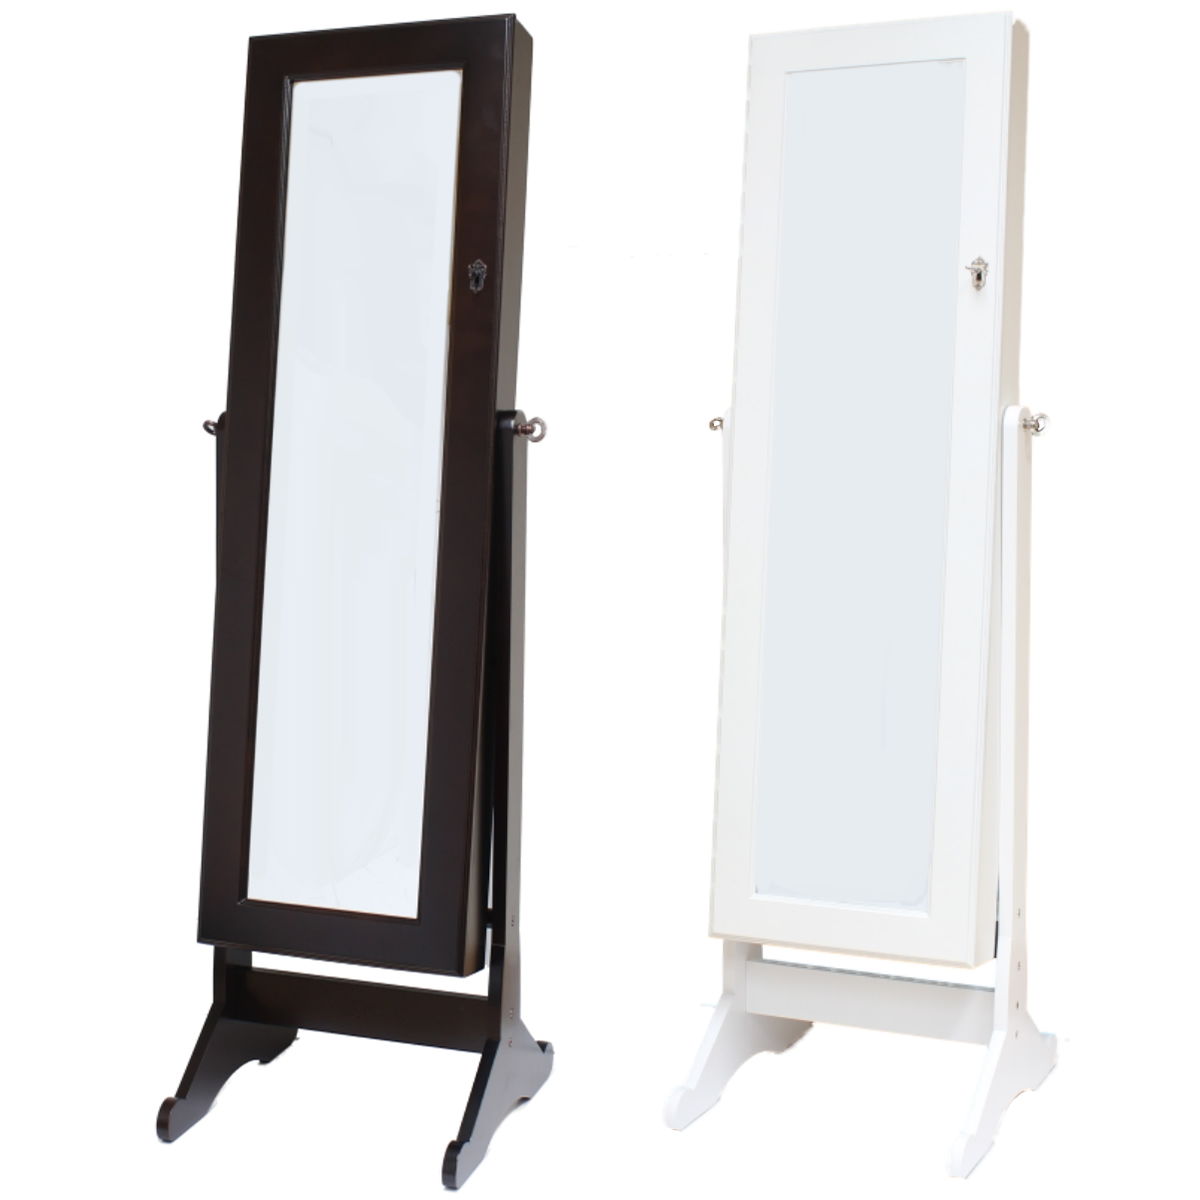 Large floor standing bedroom mirror jewellery box cabinet for Floor standing mirrored bathroom cabinet